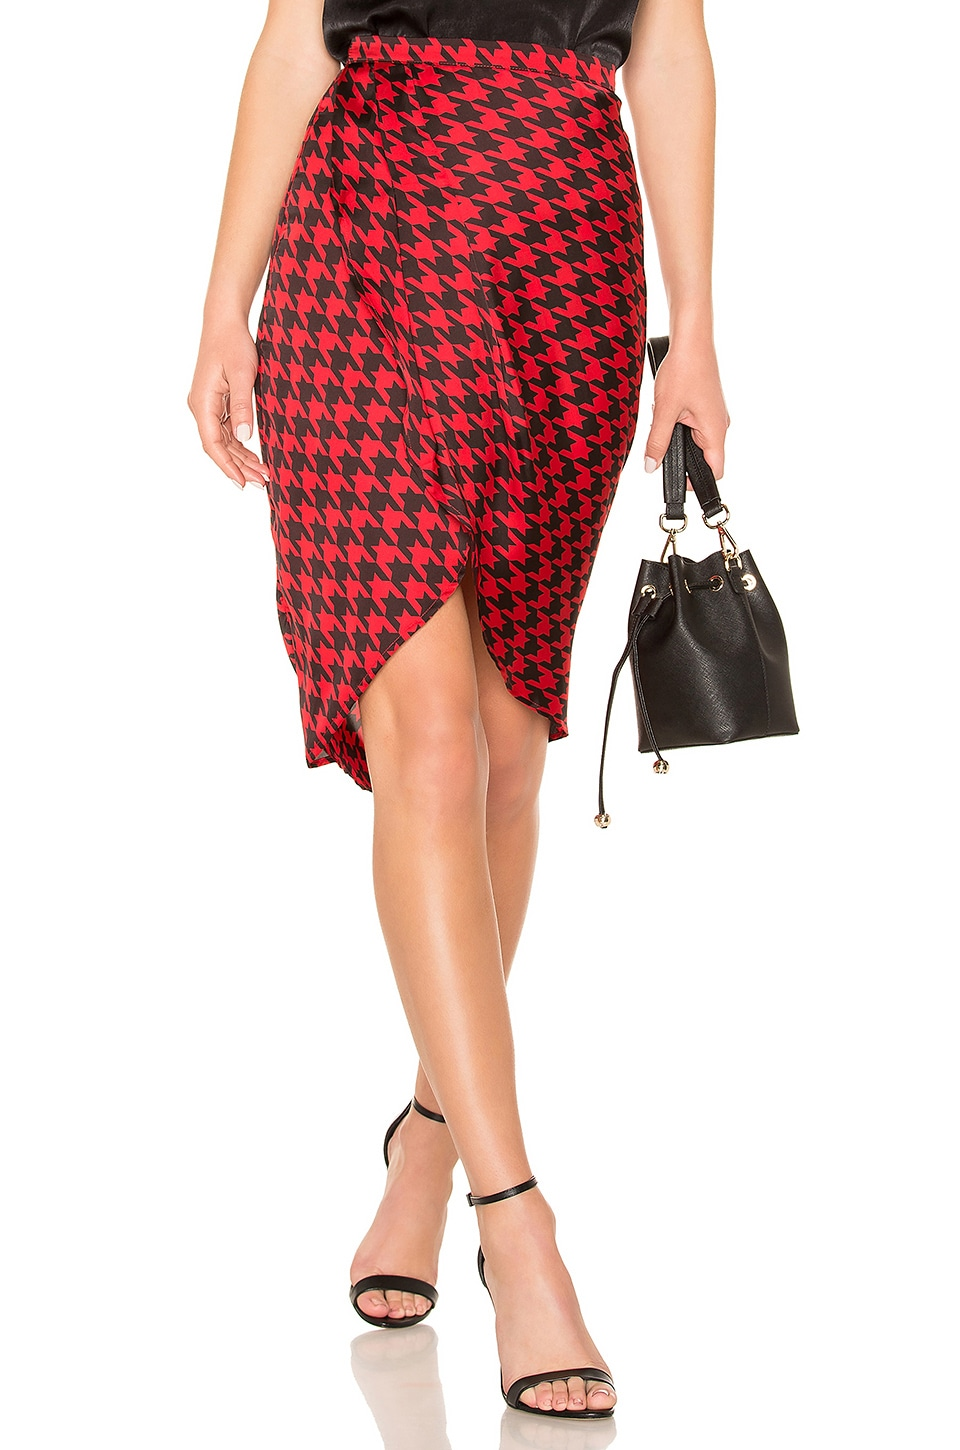 L'Academie The Arlene Midi Skirt in Red Houndstooth